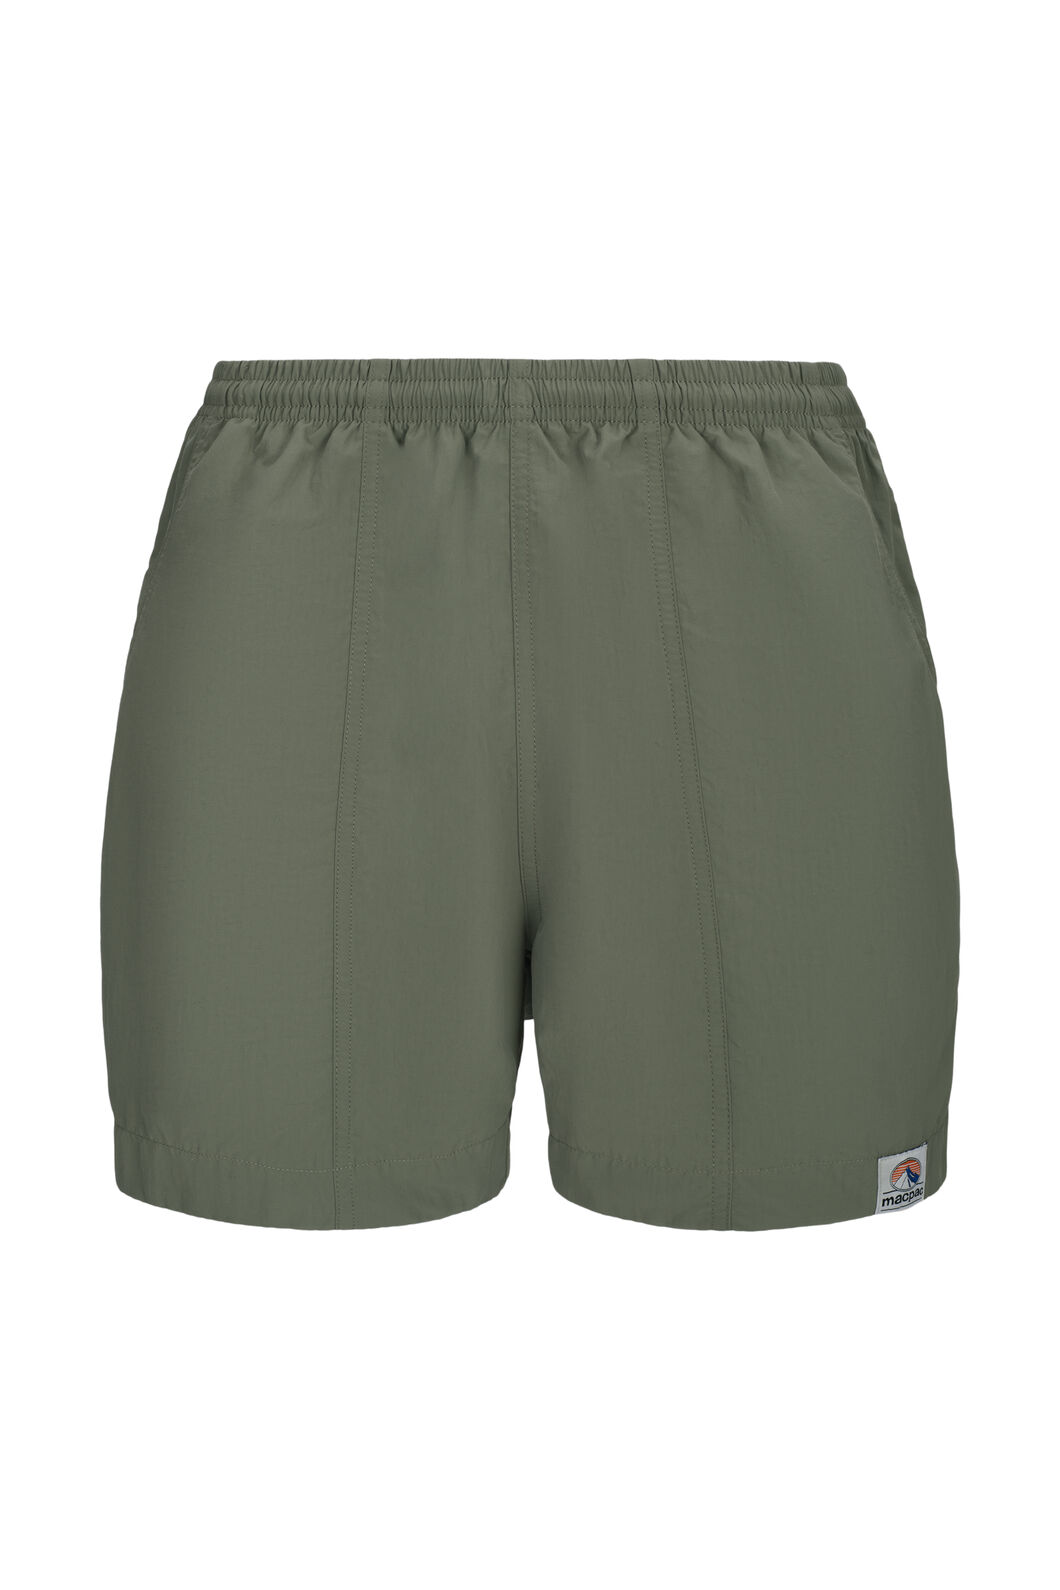 Macpac Winger Shorts — Men's, Deep Lichen Green, hi-res